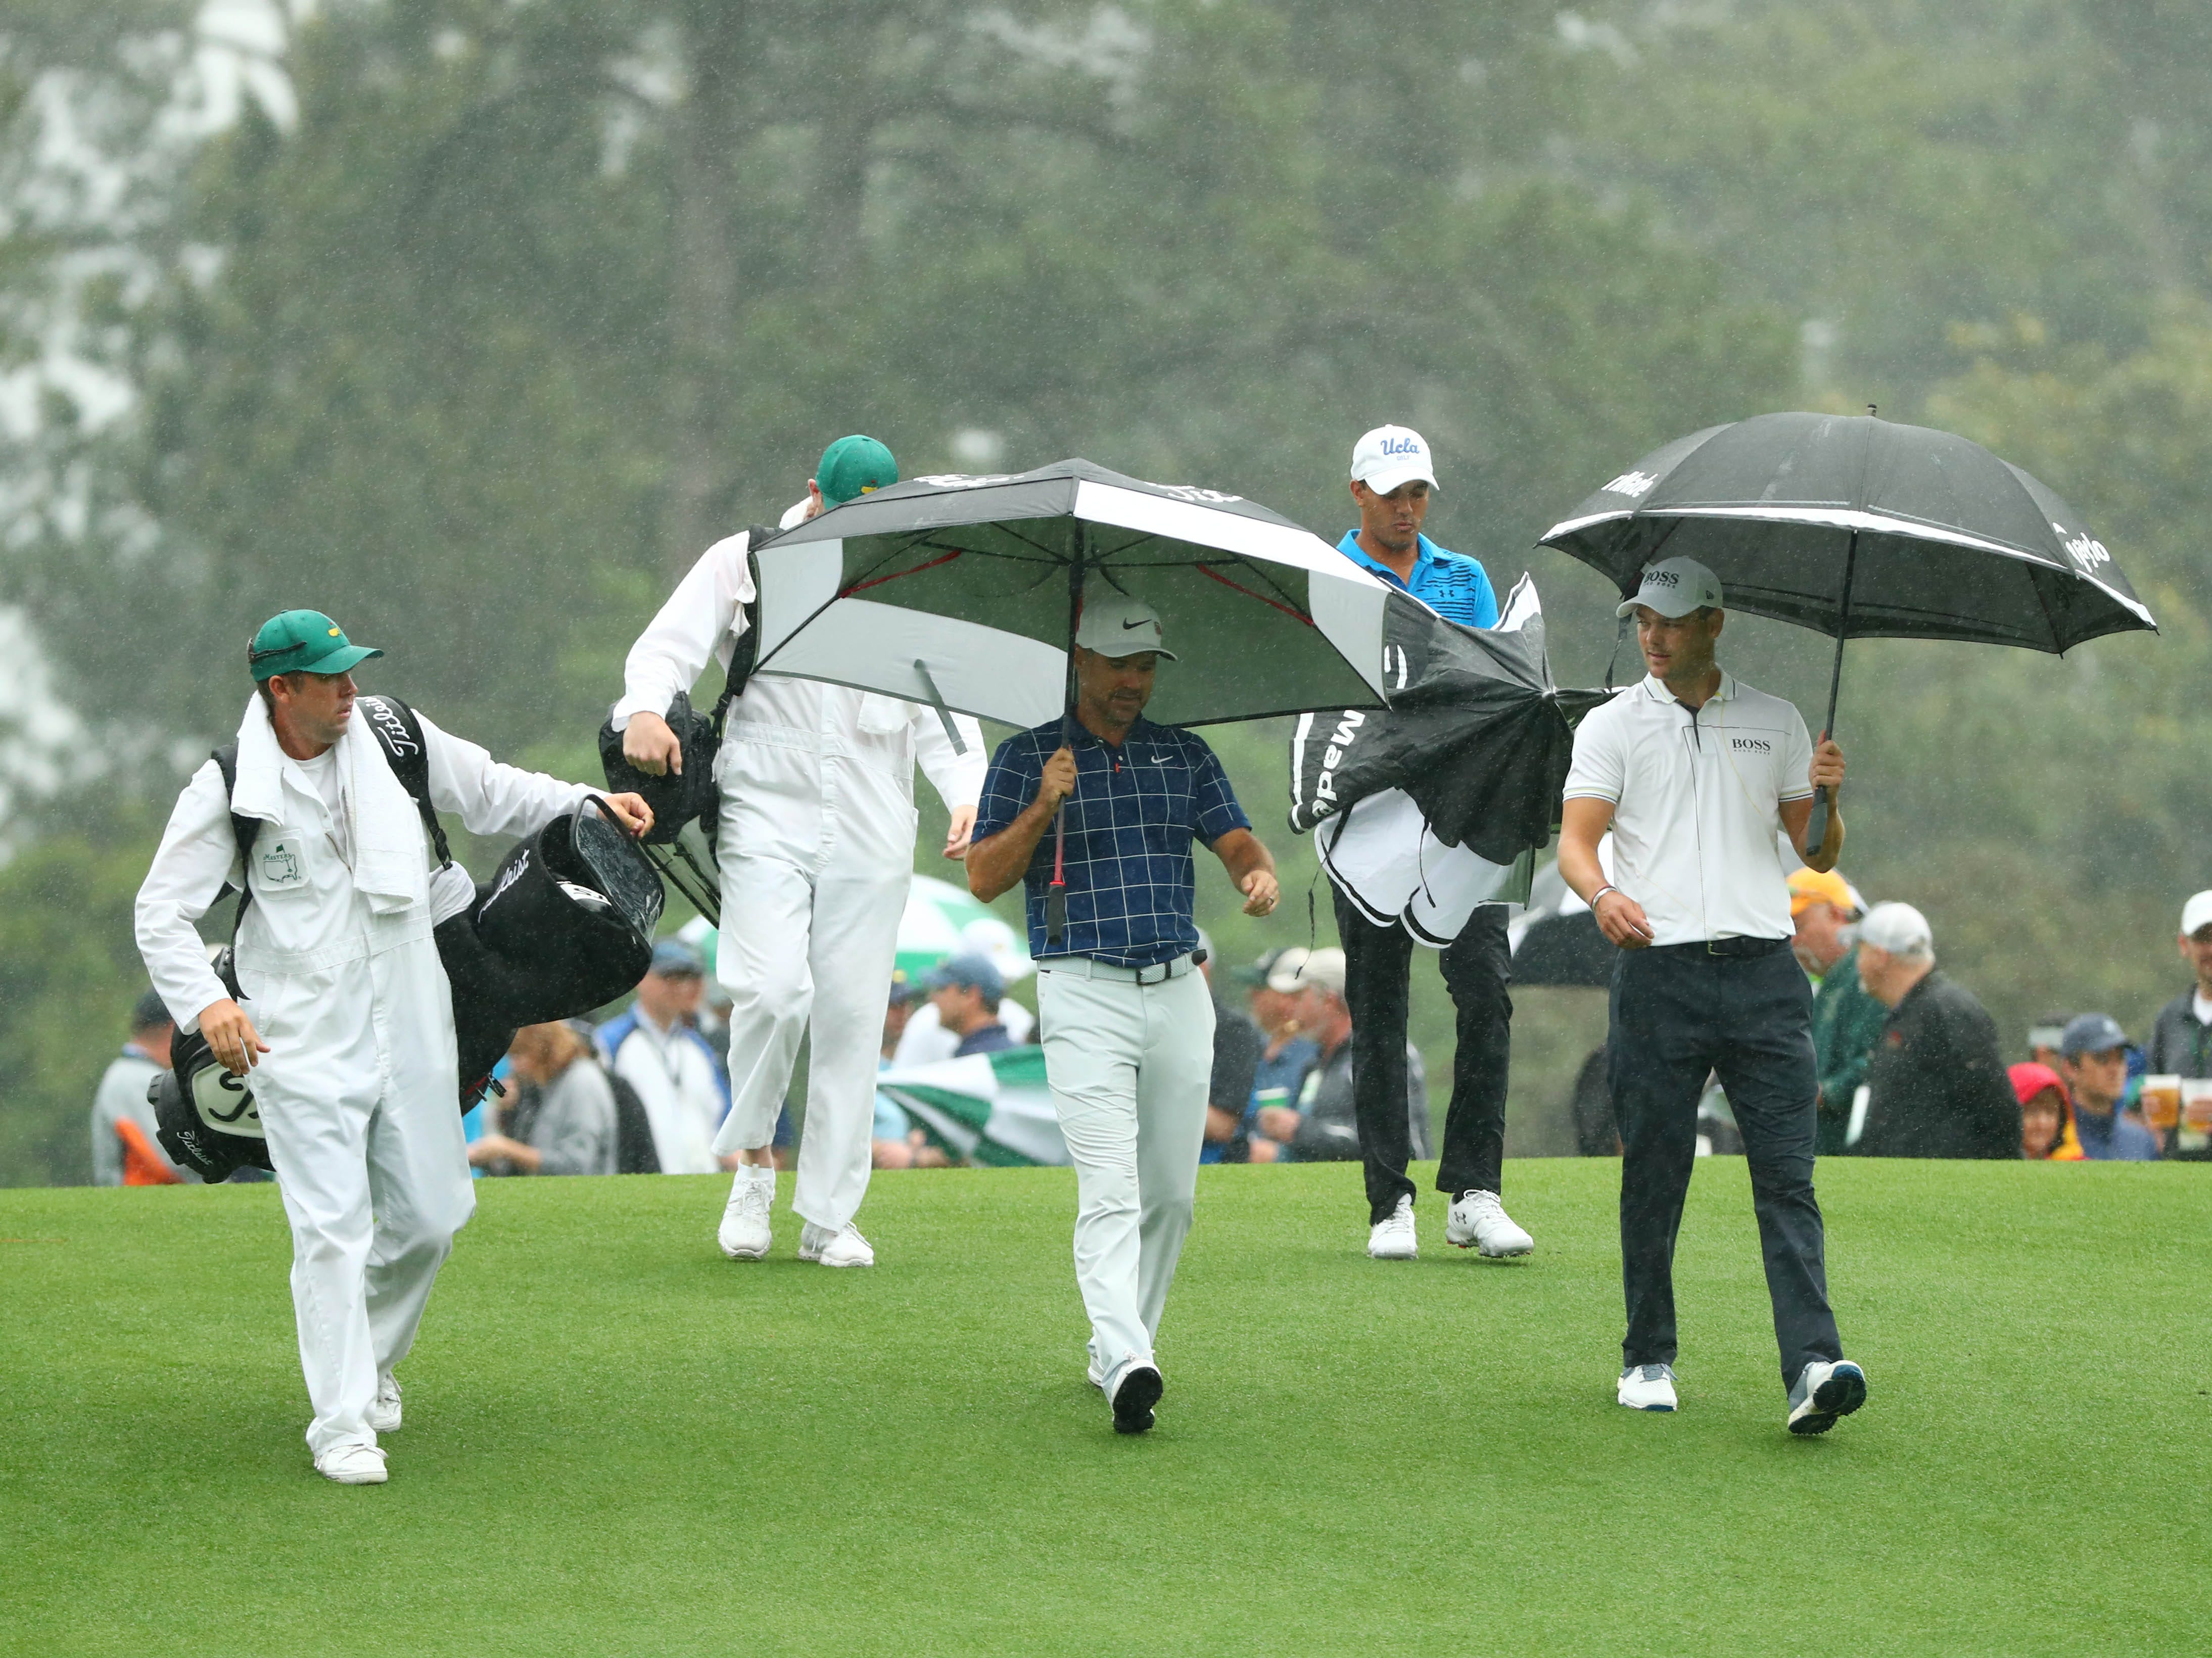 Apr 12, 2019; Augusta, GA, USA; From right Martin Kaymer , Devon Bling and Trevor Immelman walk off the 1st tee under umbrellas during the second round of The Masters golf tournament at Augusta National Golf Club. Mandatory Credit: Rob Schumacher-USA TODAY Sports